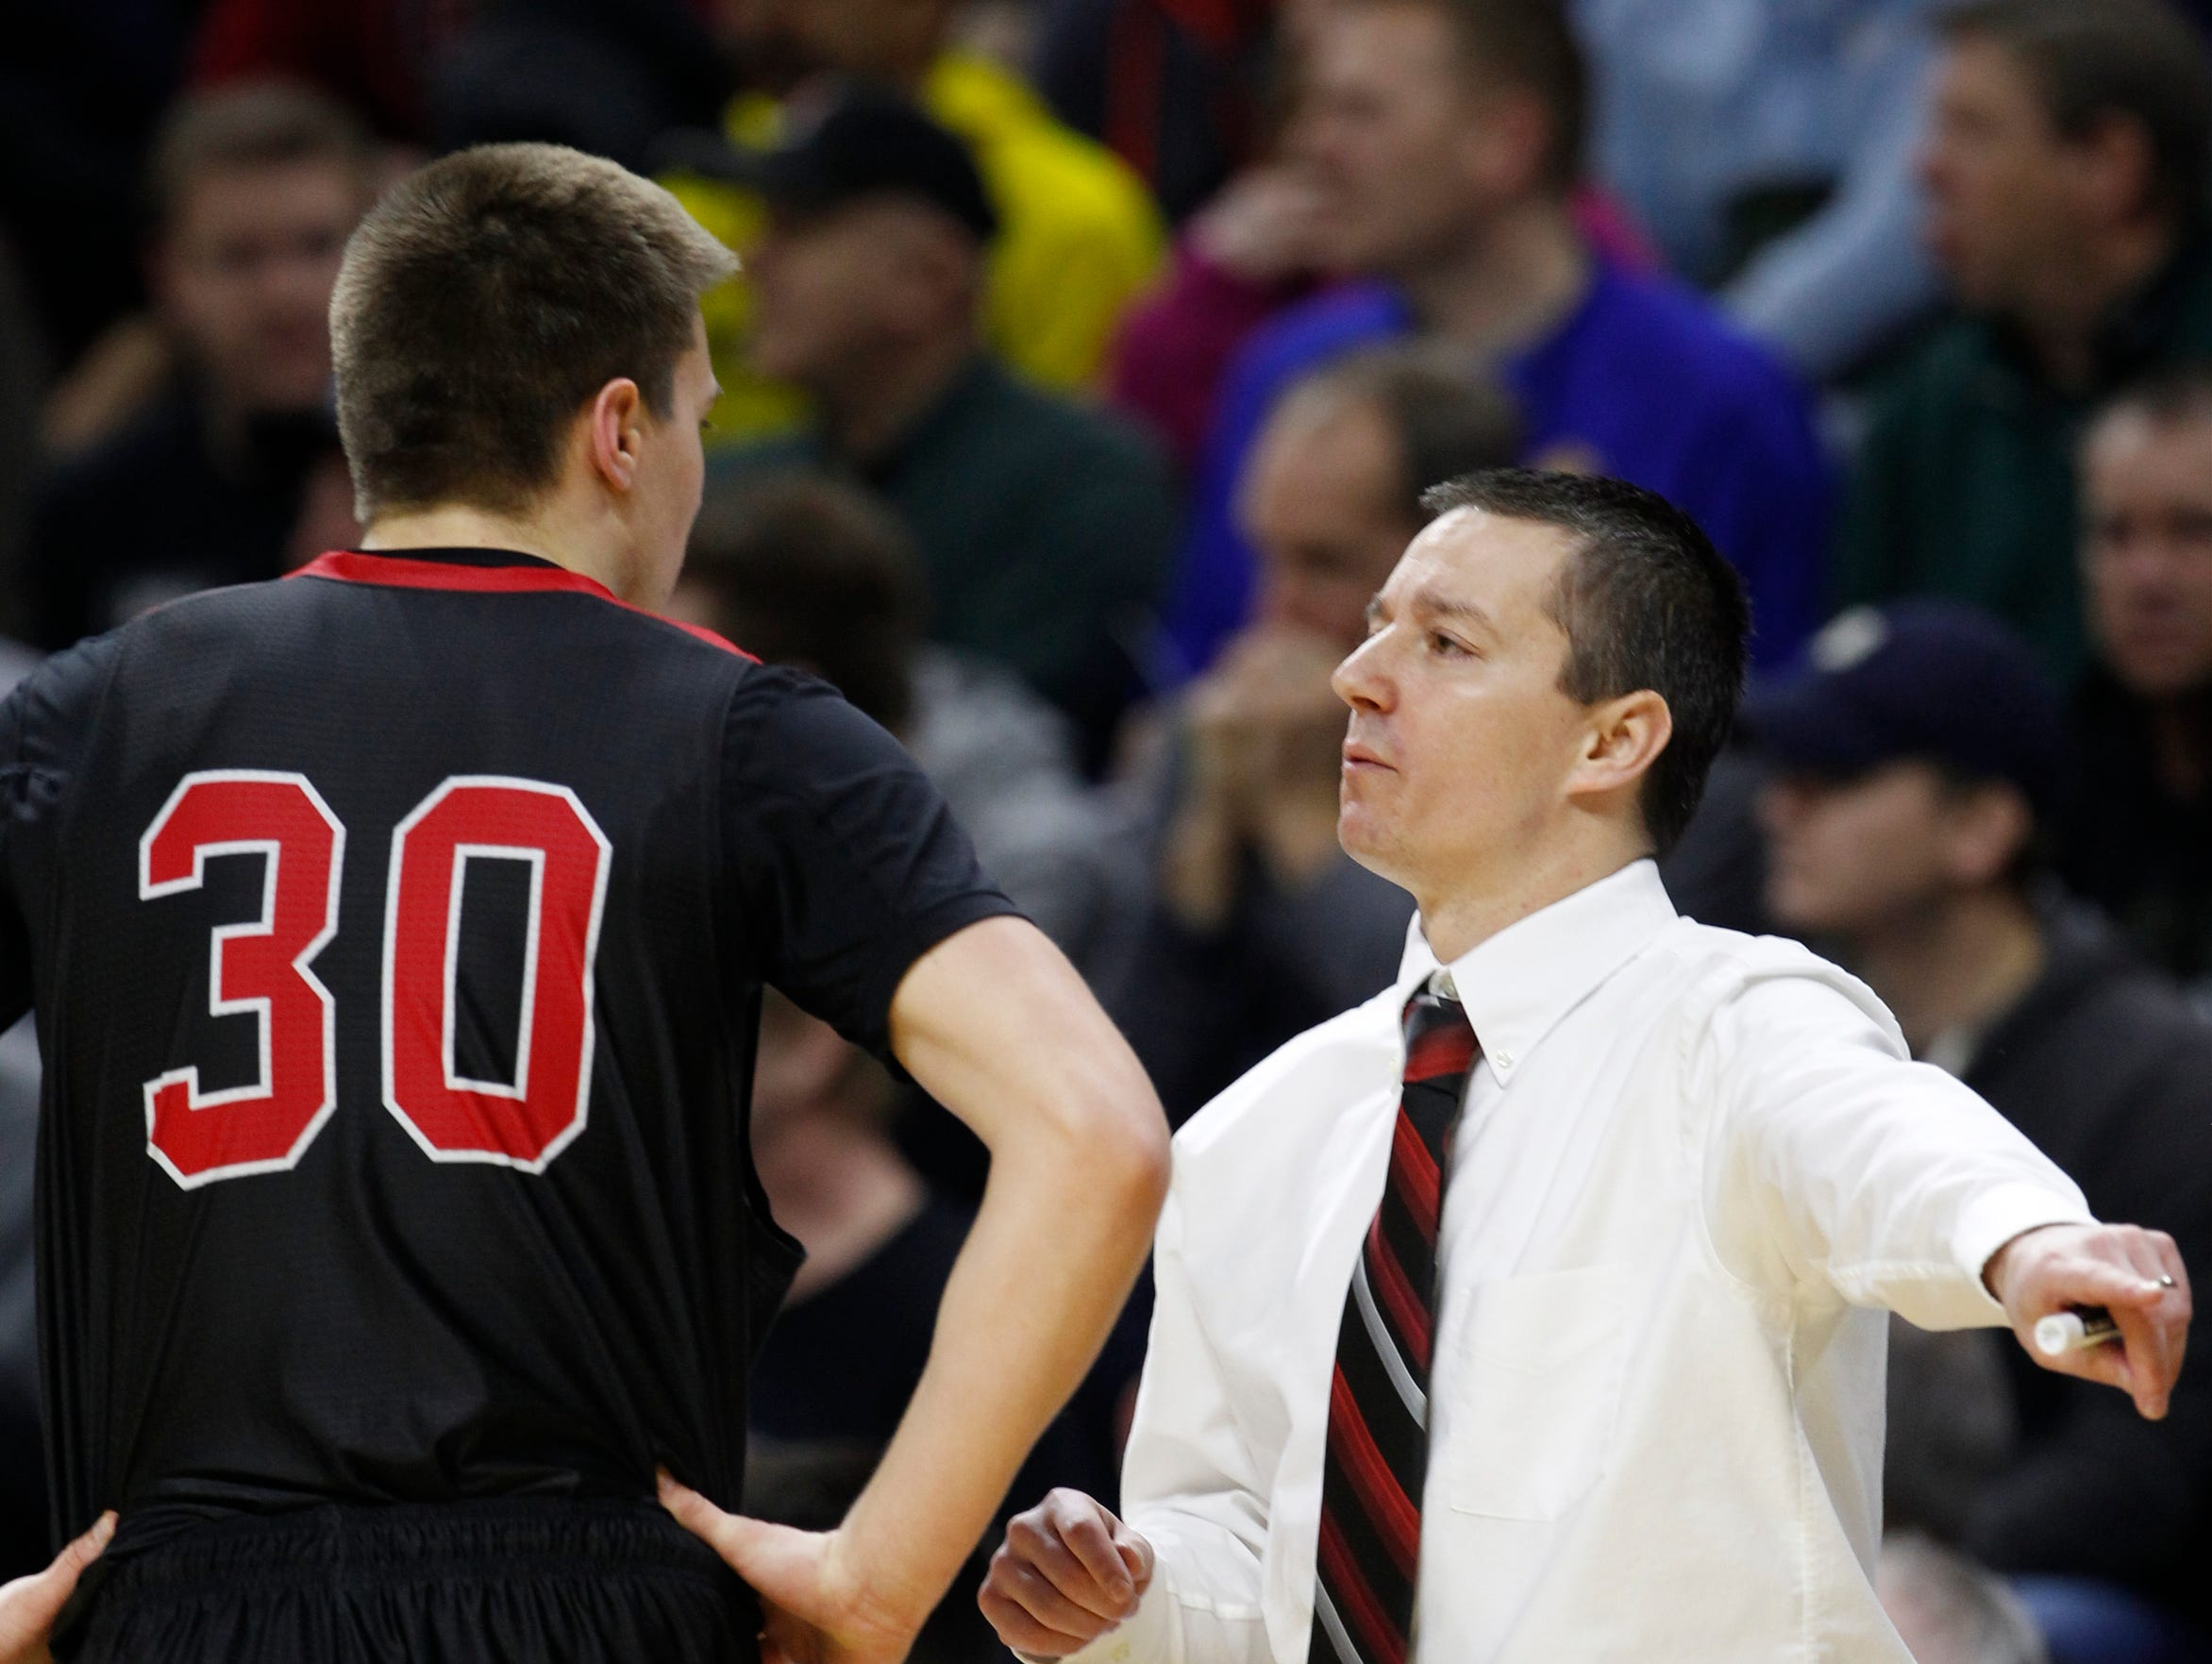 Powers North Central Jason Whitens listens to instructions from head coach Adam Mercier in the first half against Morenci in the MHSAA boys basketball Class D finals March 28, 2015 in East Lansing.